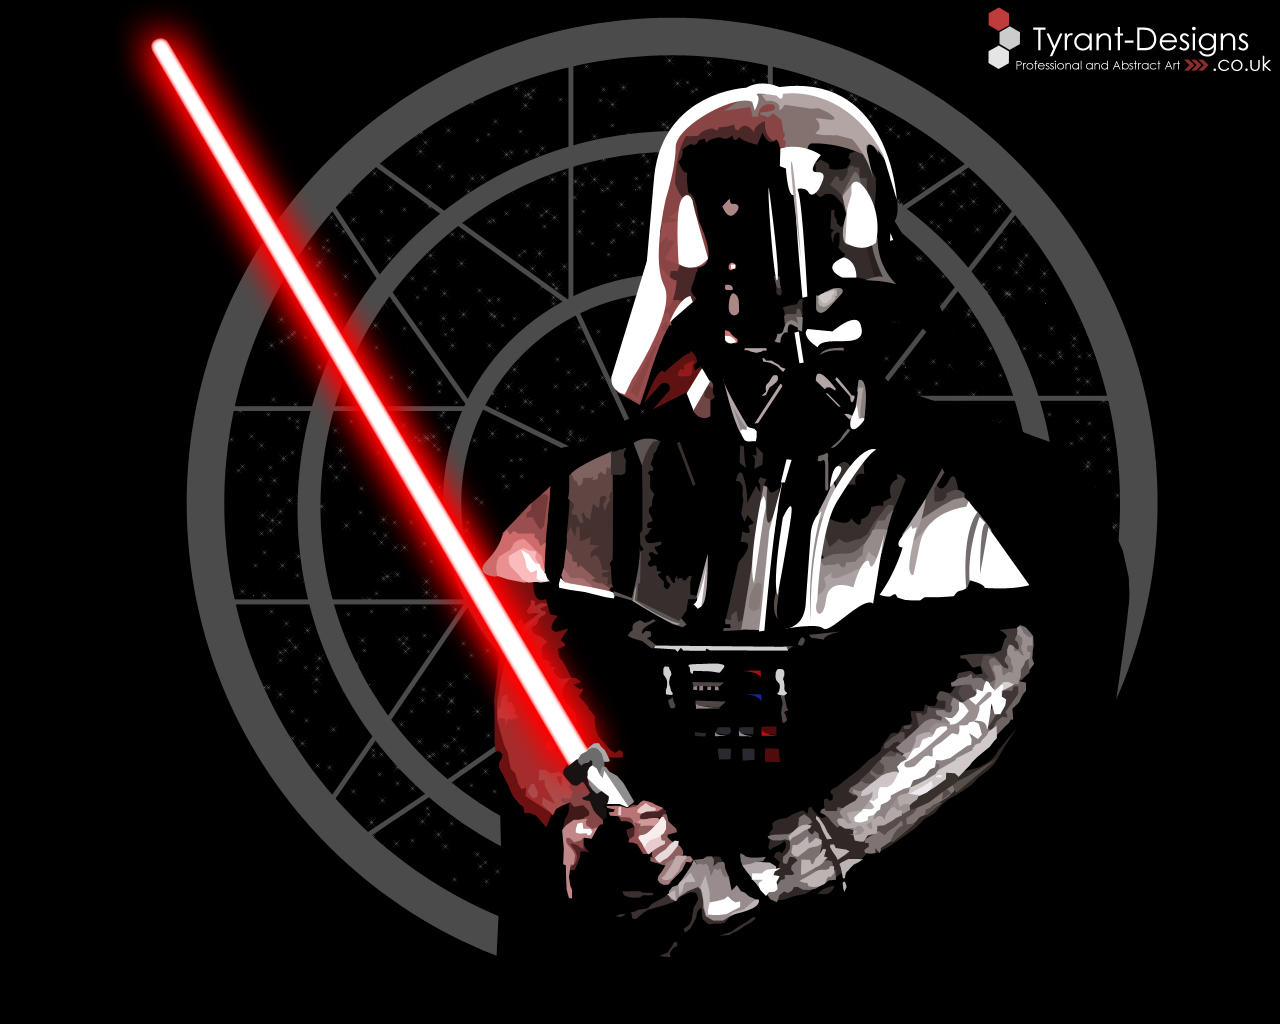 Darth Vader by Tyrant-Designs